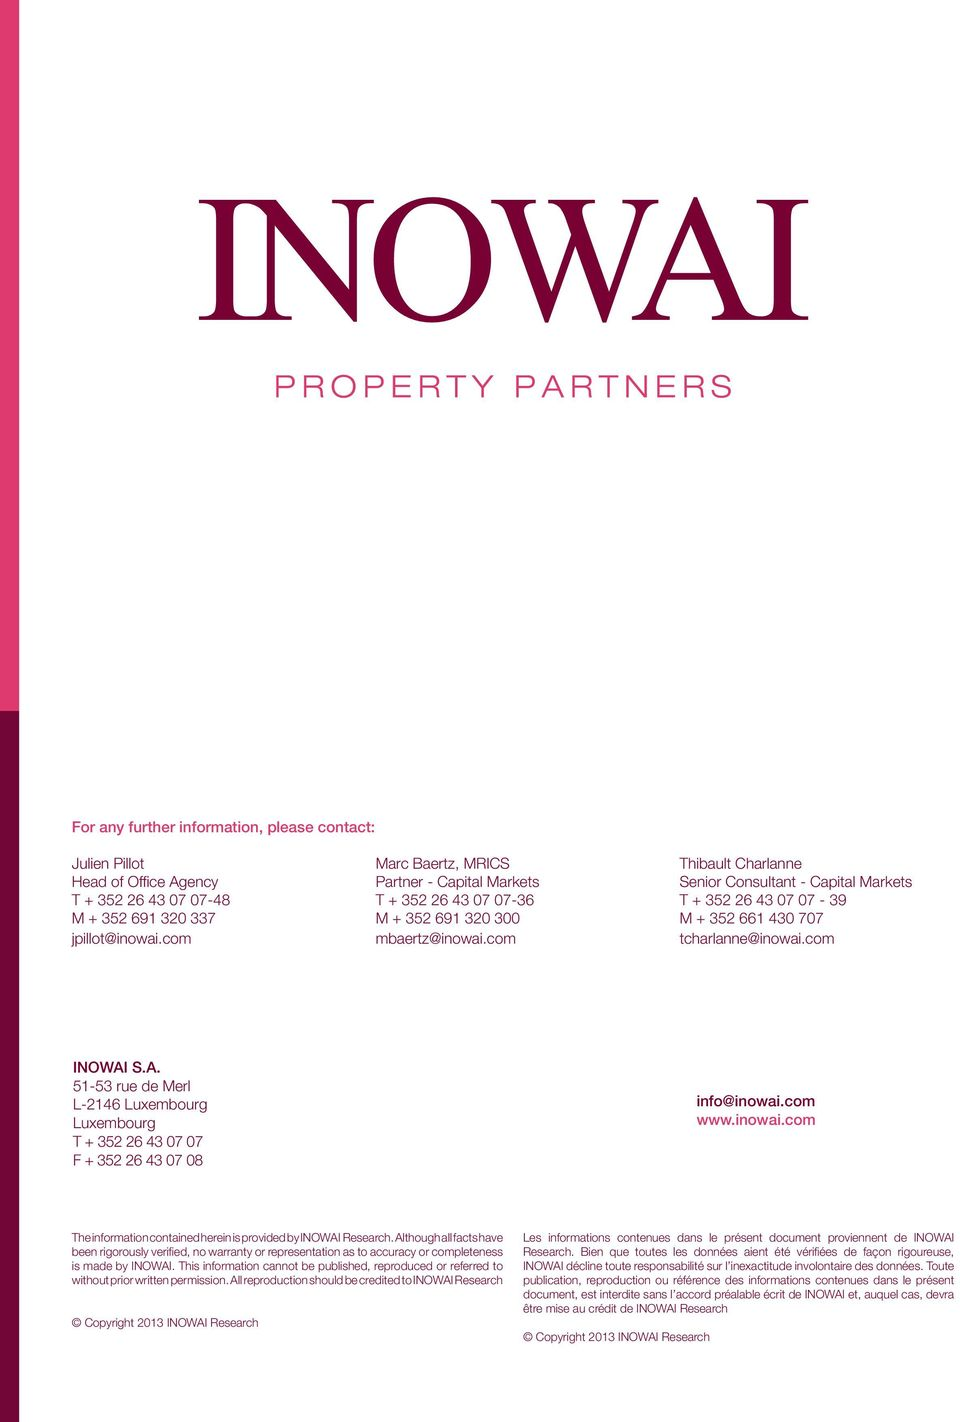 S.A. 51-53 rue de Merl L-2146 Luxembourg Luxembourg T + 352 26 43 07 07 F + 352 26 43 07 08 info@inowai.com www.inowai.com The information contained herein is provided by INOWAI Research.